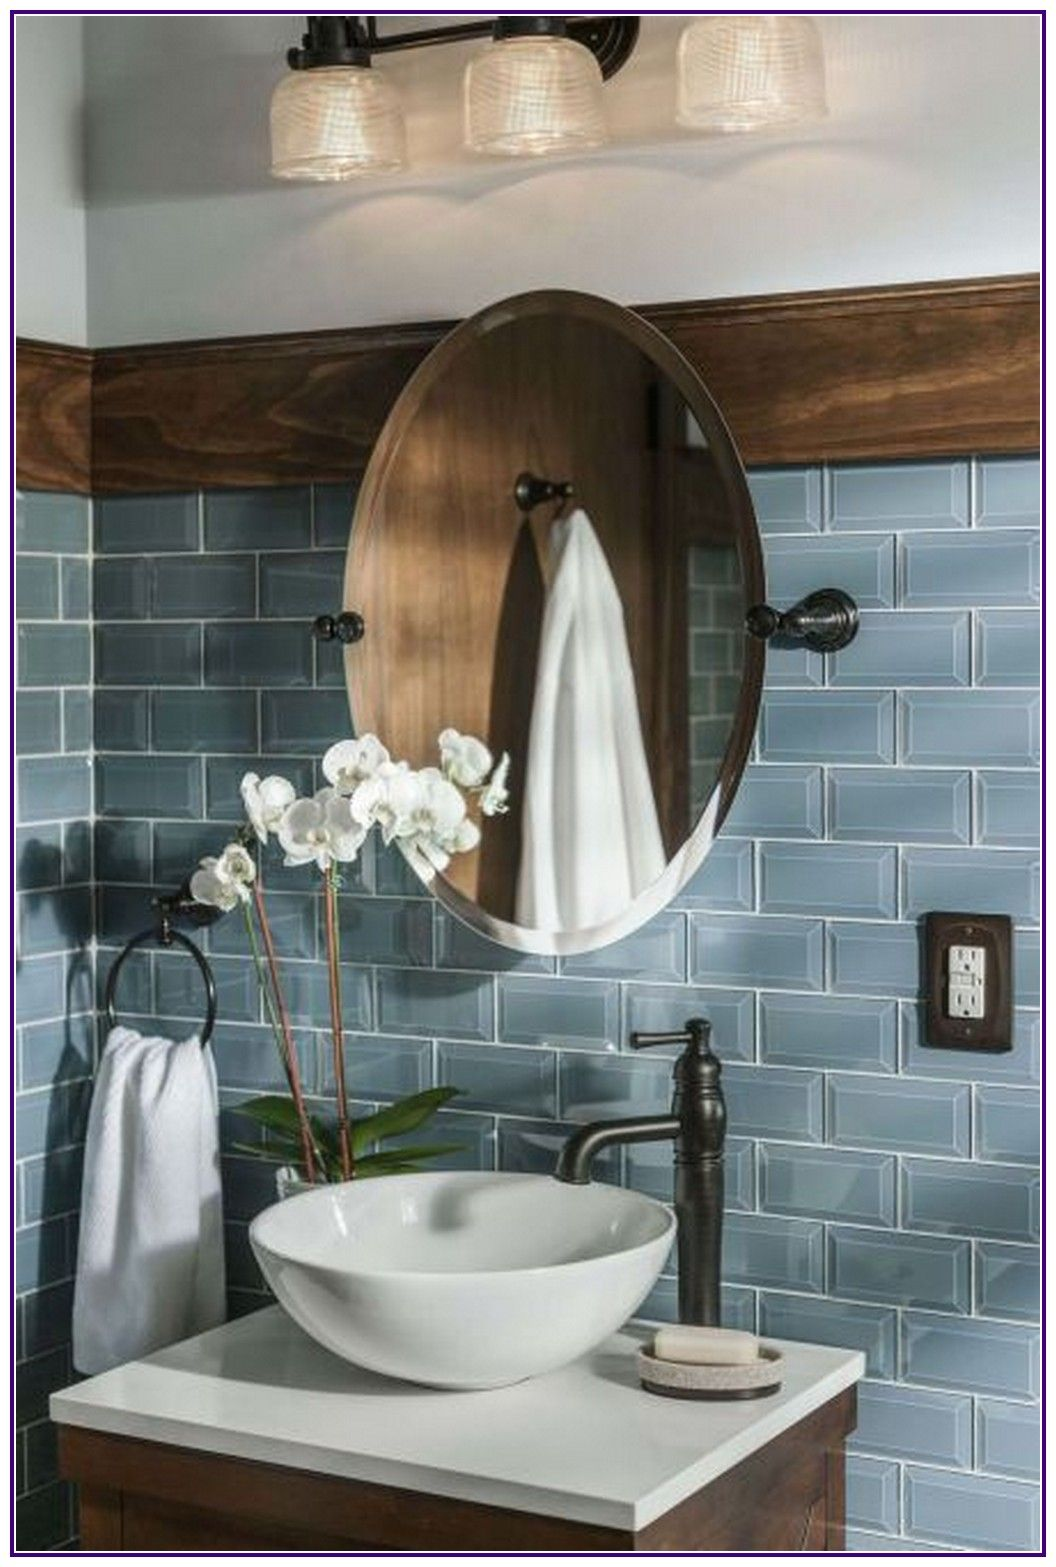 15 stunning small bathroom makeover ideas 00008 in 2020 on stunning small bathroom design ideas id=17902